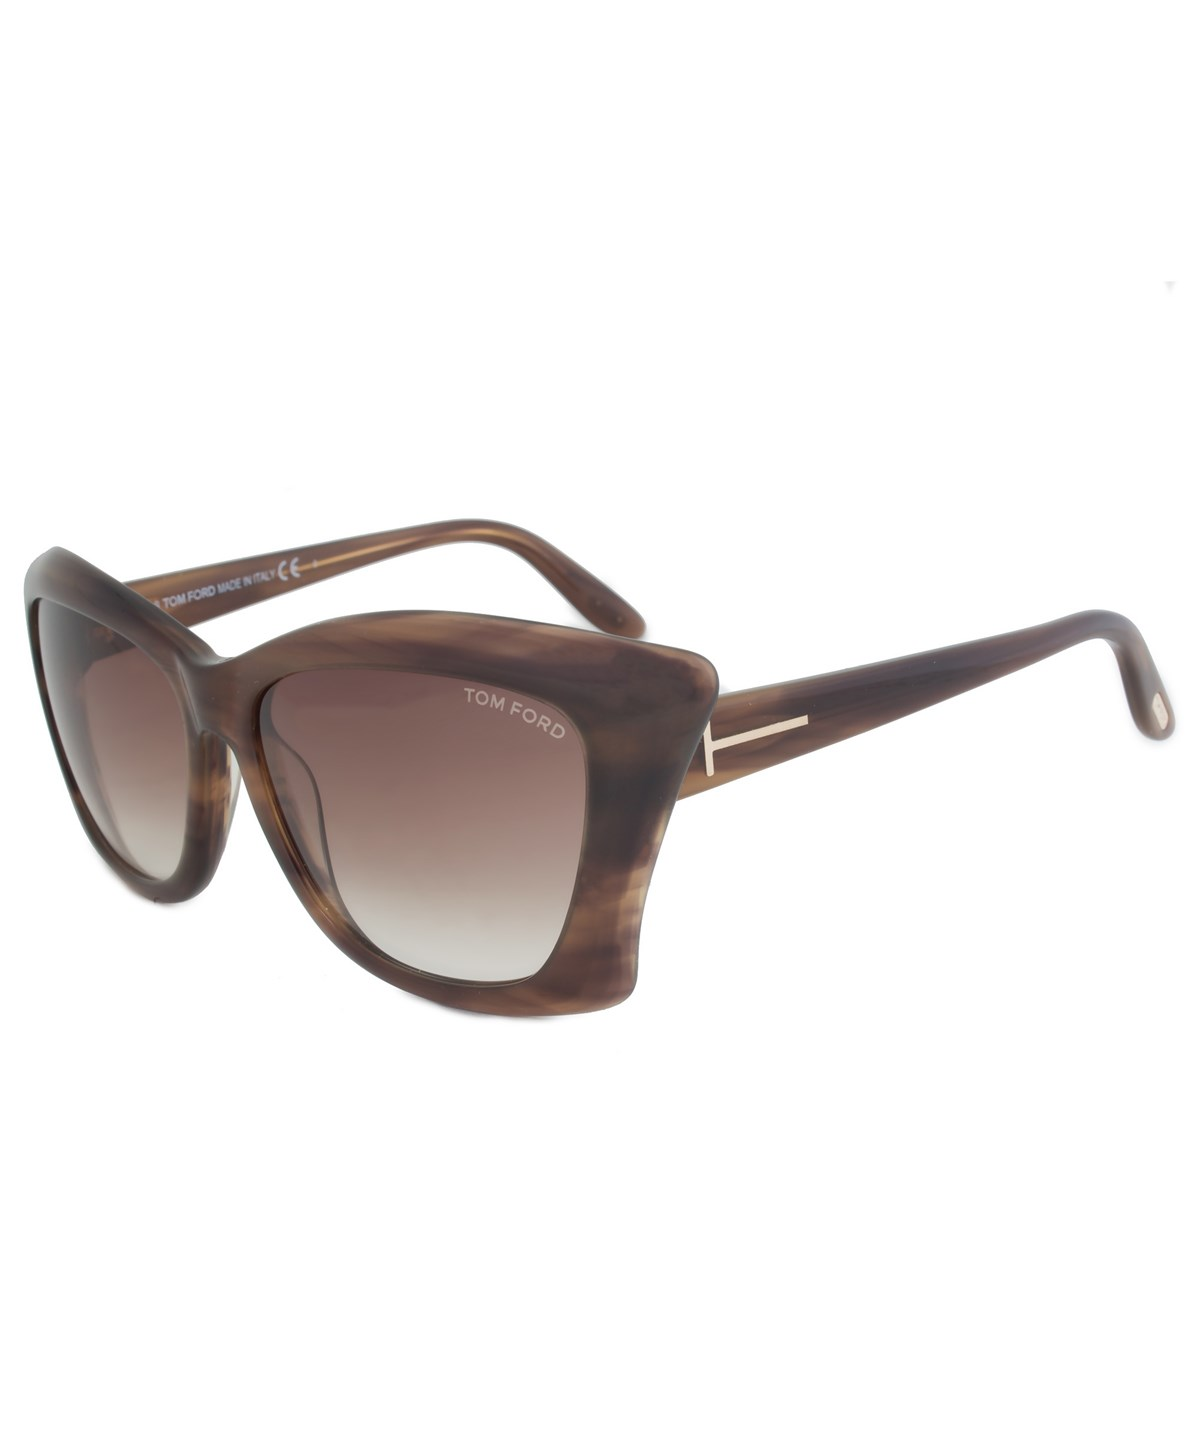 Tom Ford Lana Asian Fit Ft9280 50f Brown Striated Cat-eye Sunglasses In Striped Brown